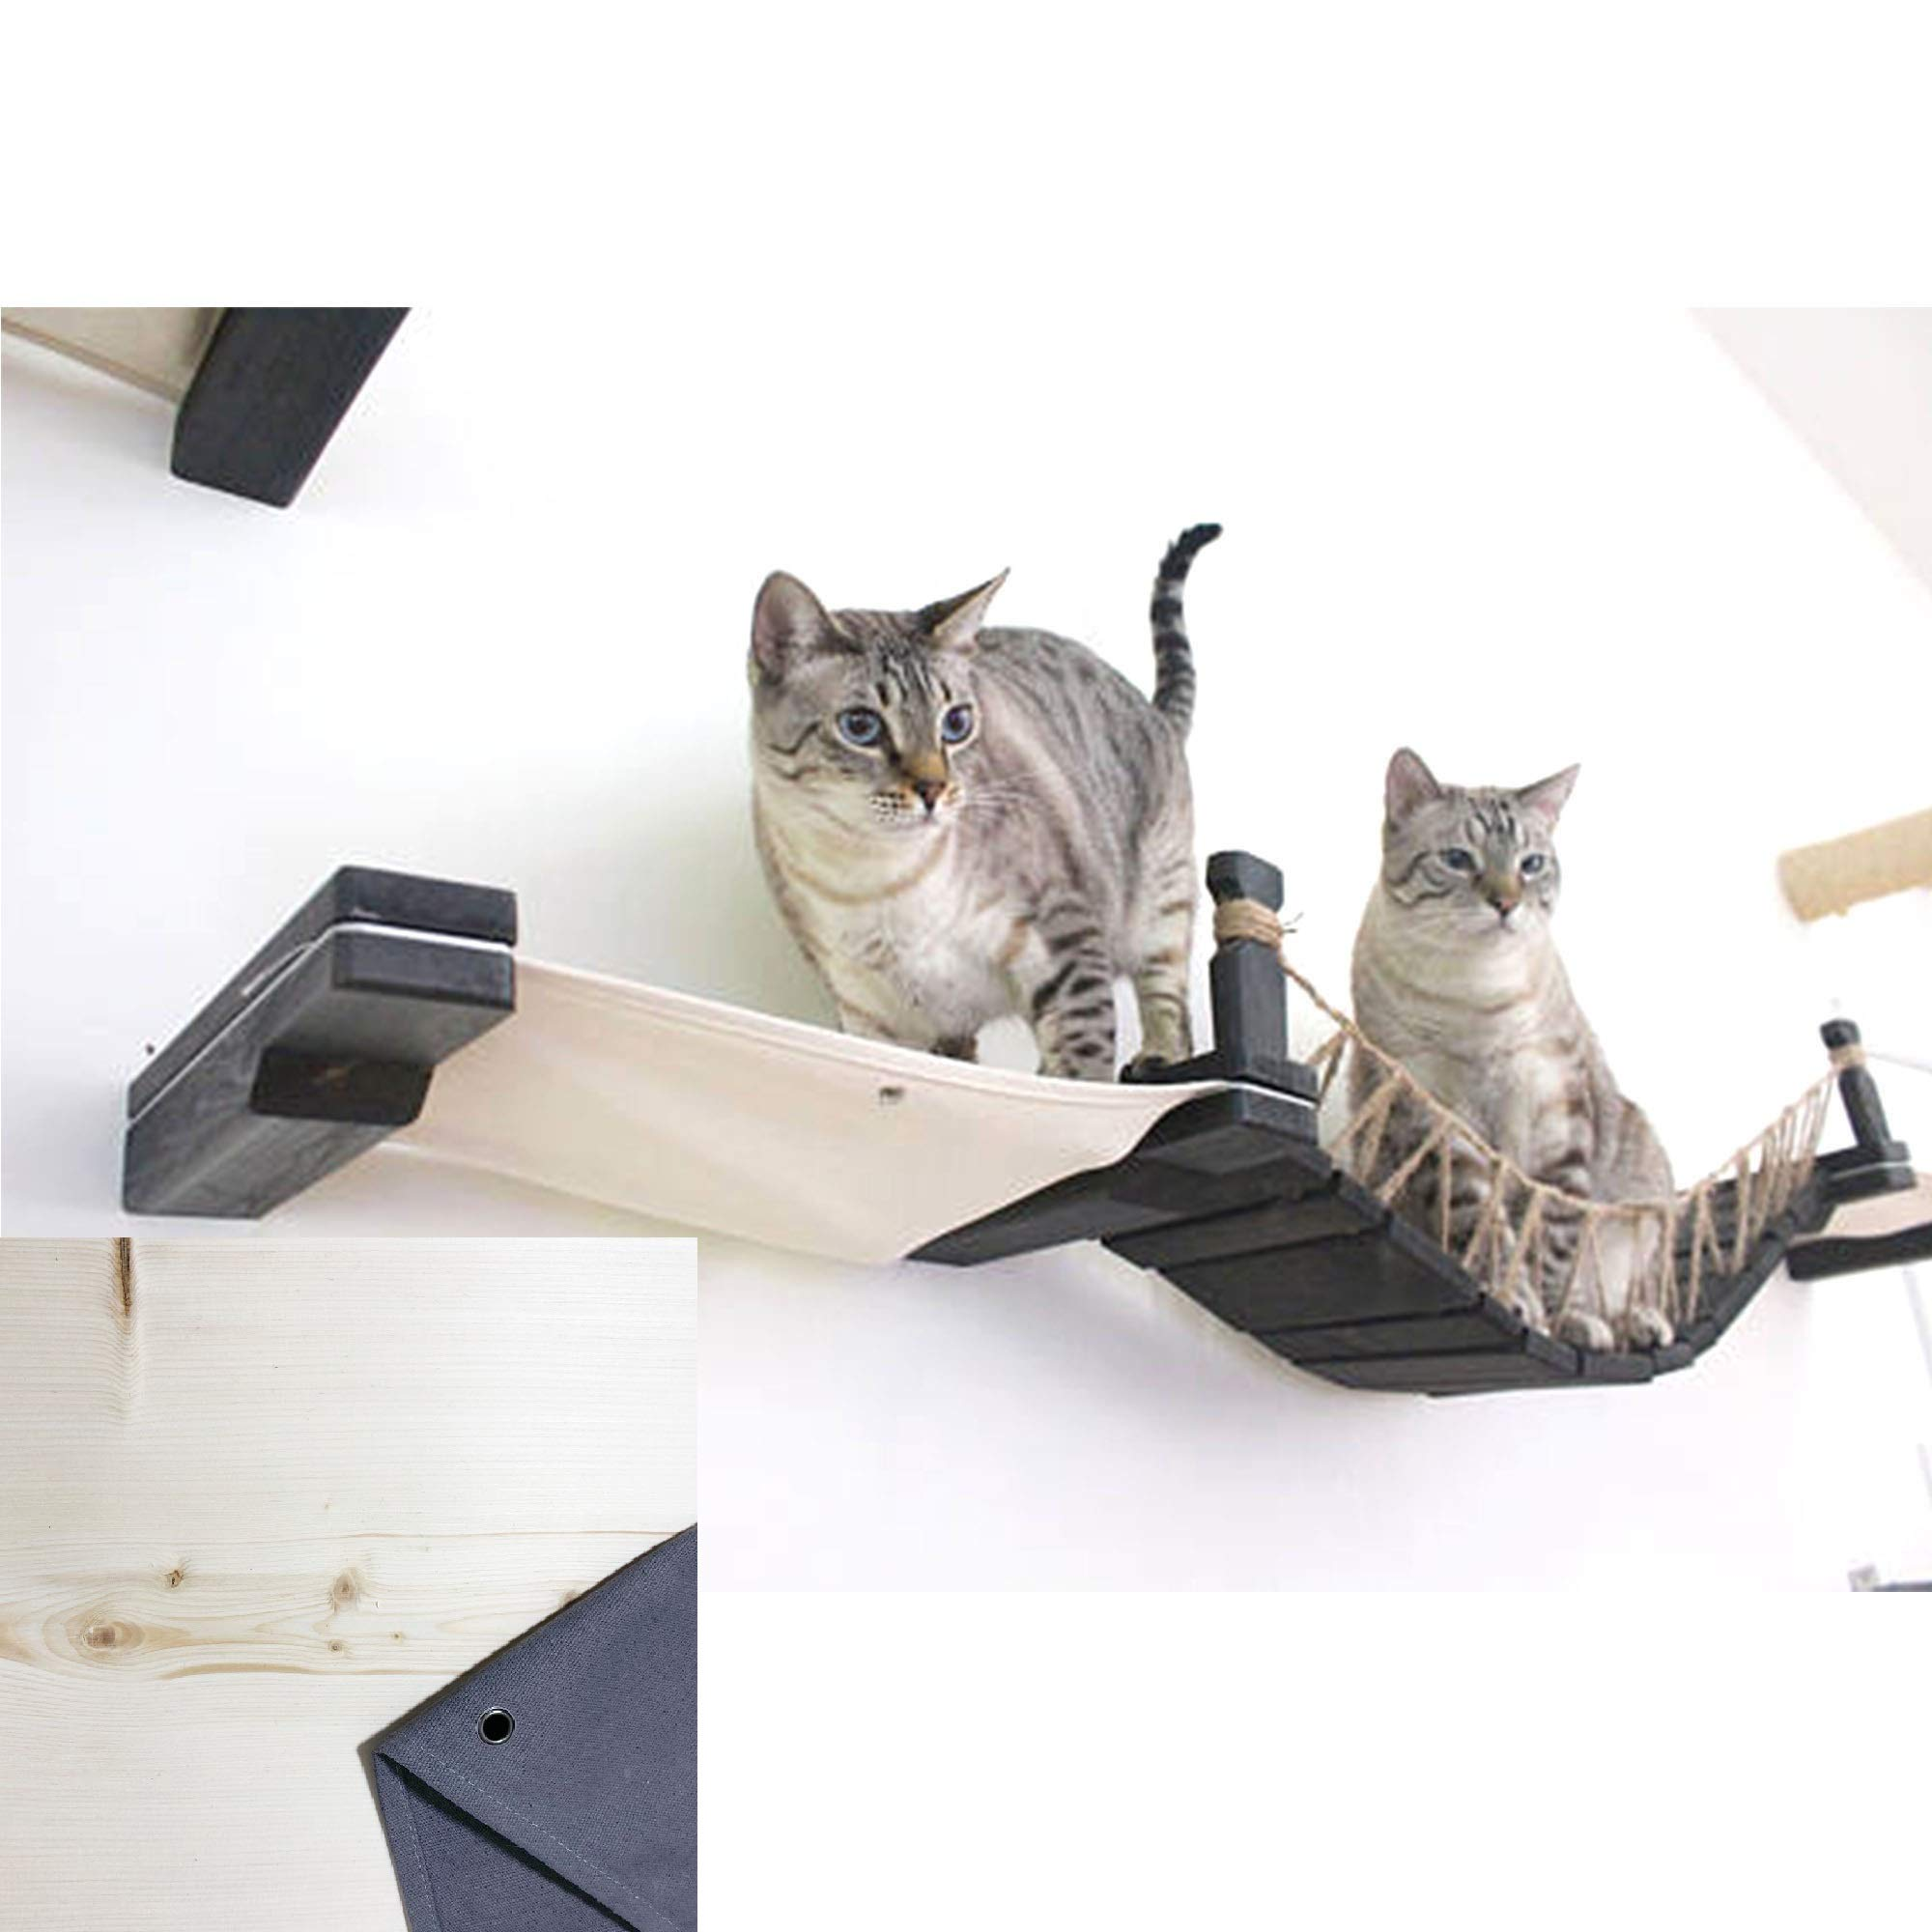 CatastrophiCreations The Cat Mod - Wall-Mounted Cat Bridge with Fabric Lounger for Cats